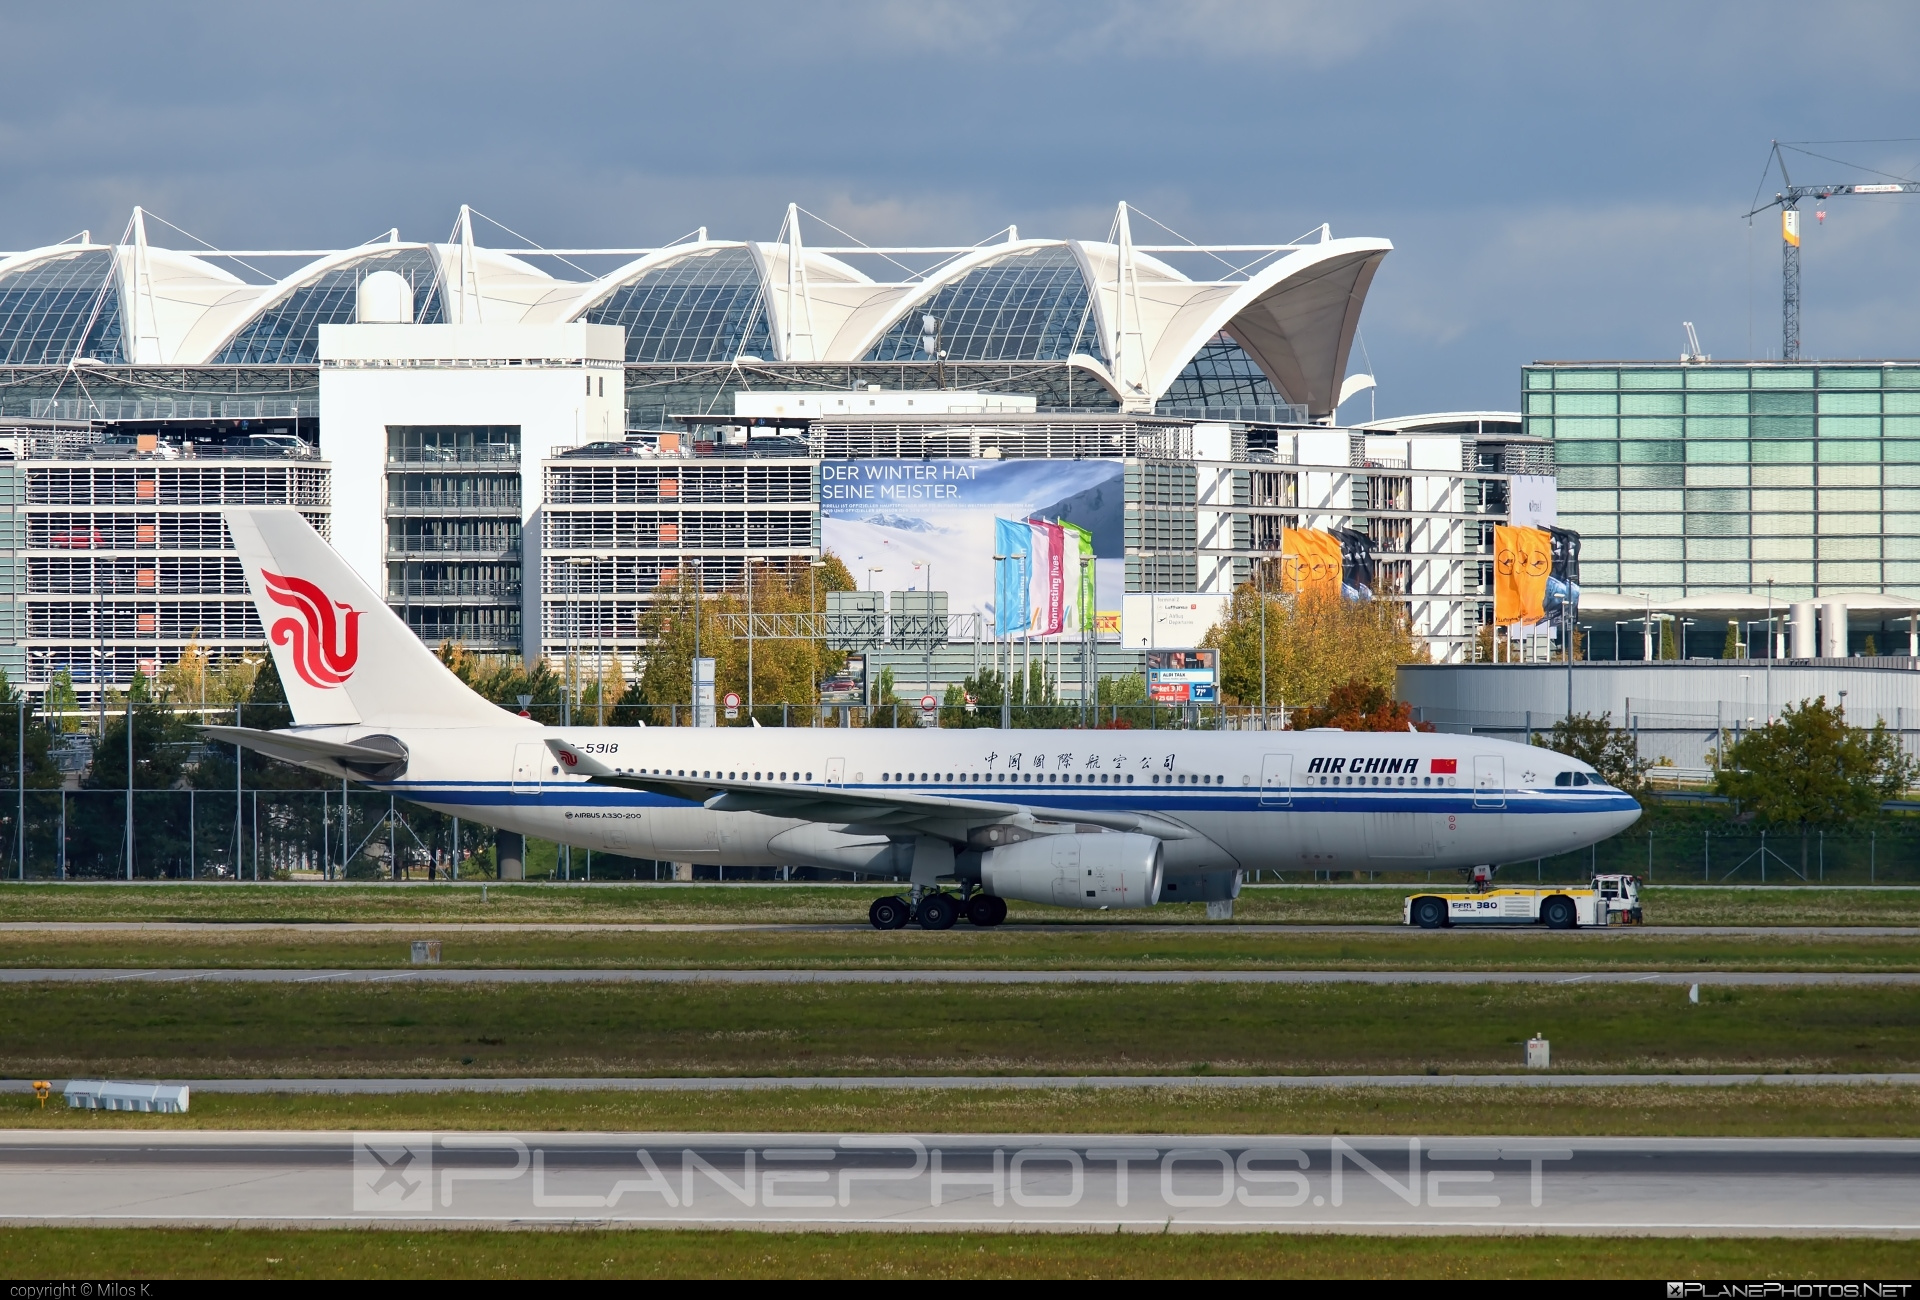 Air China Airbus A330-243 - B-5918 #a330 #a330family #airbus #airbus330 #airchina